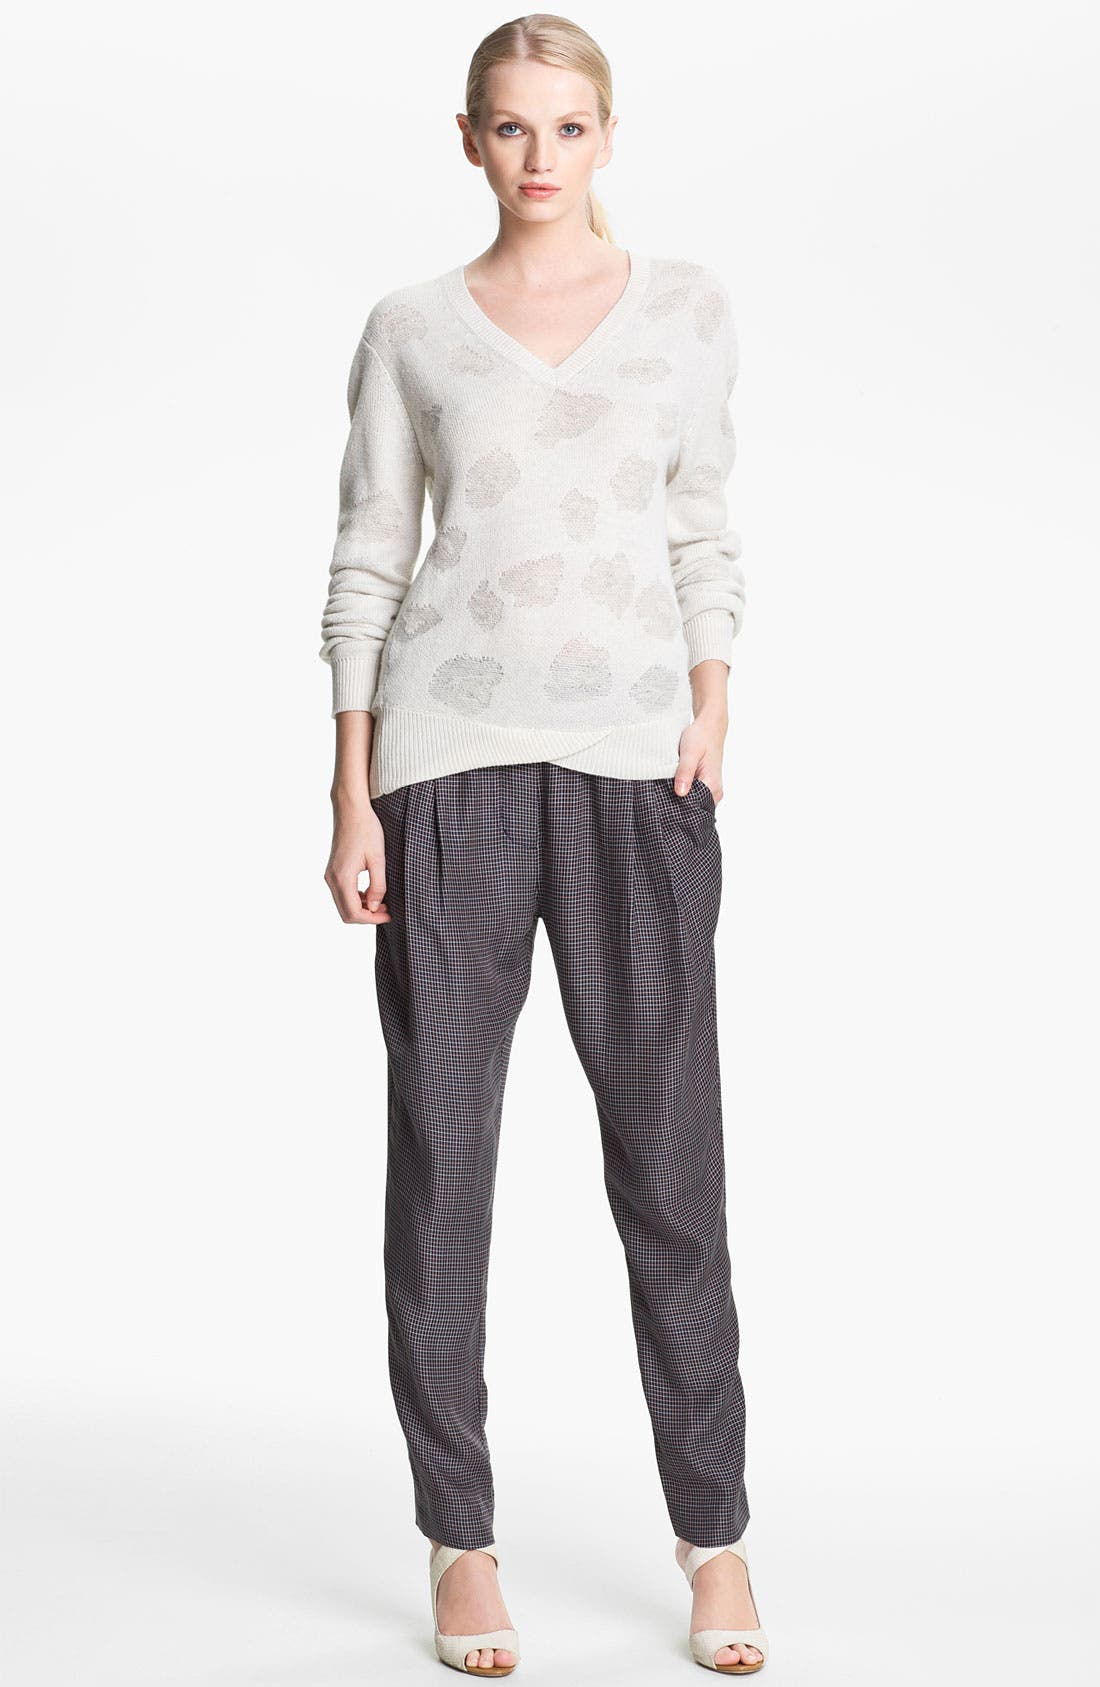 Alternate Image 1 Selected - 3.1 Phillip Lim Floral Jacquard Sweater